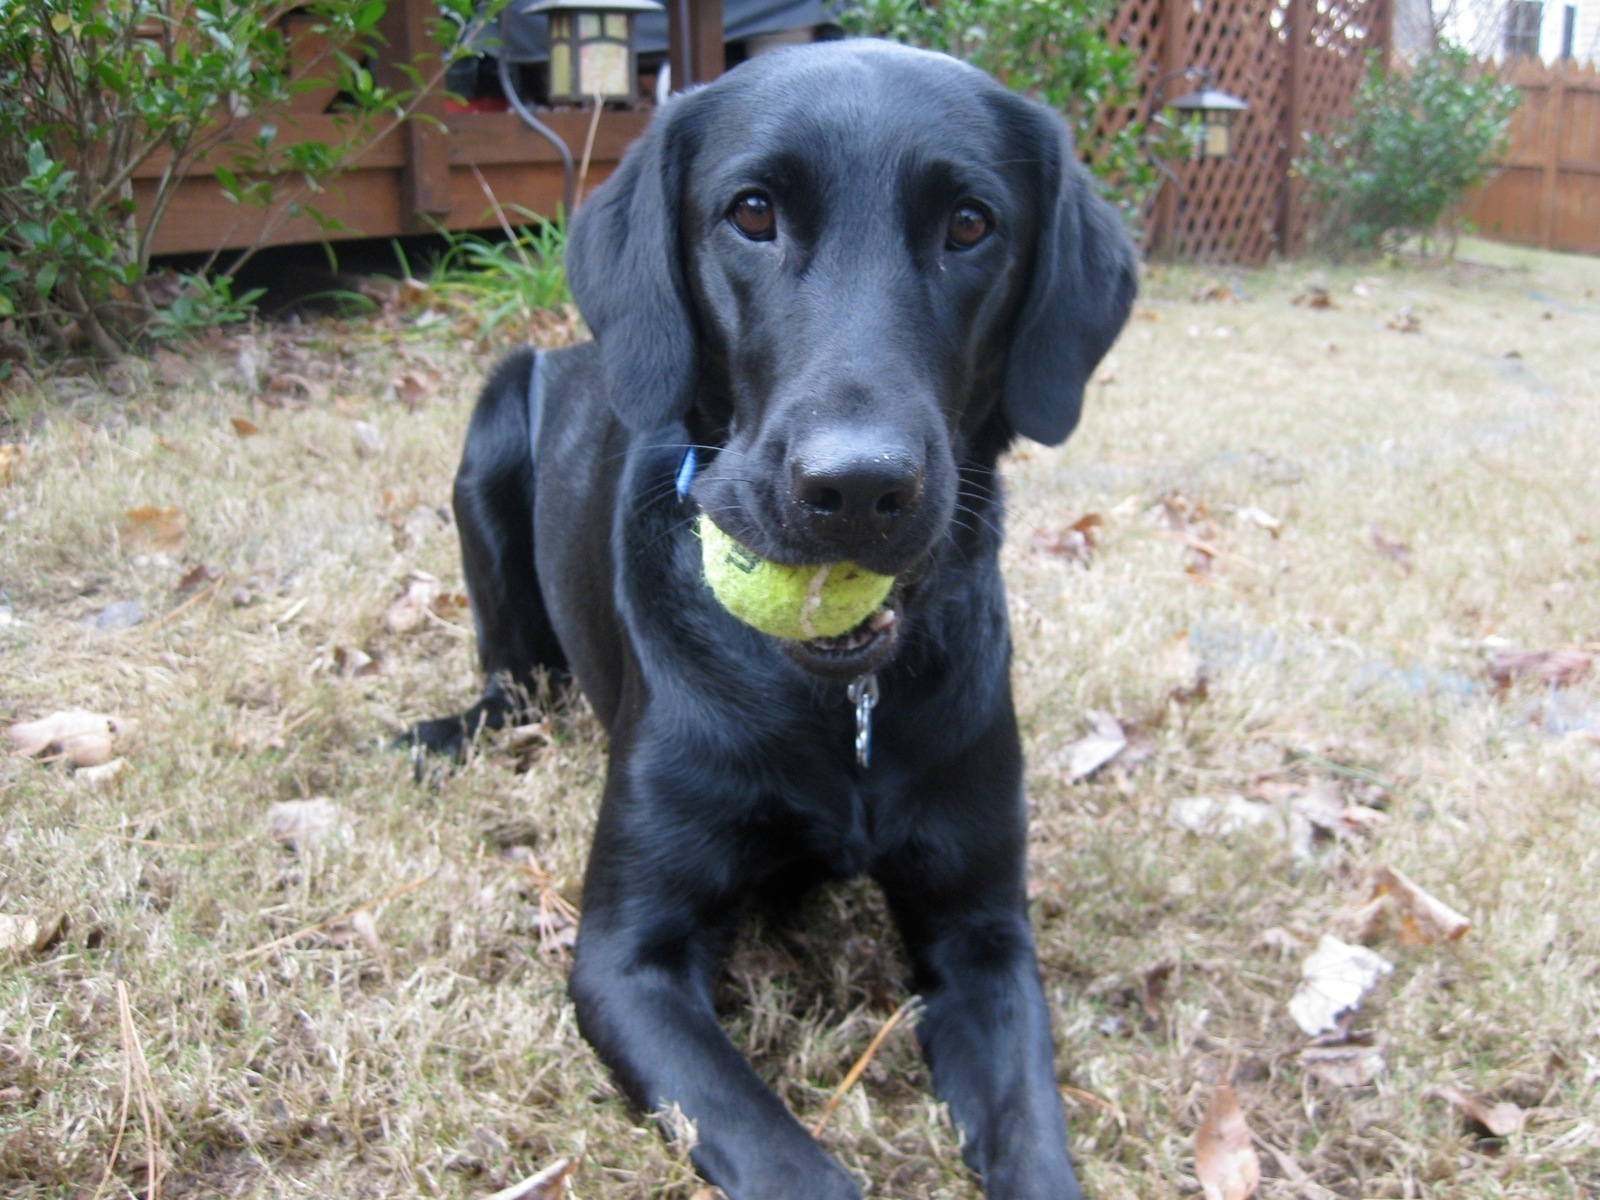 Are Tennis Balls Safe for Dogs? - akc.org